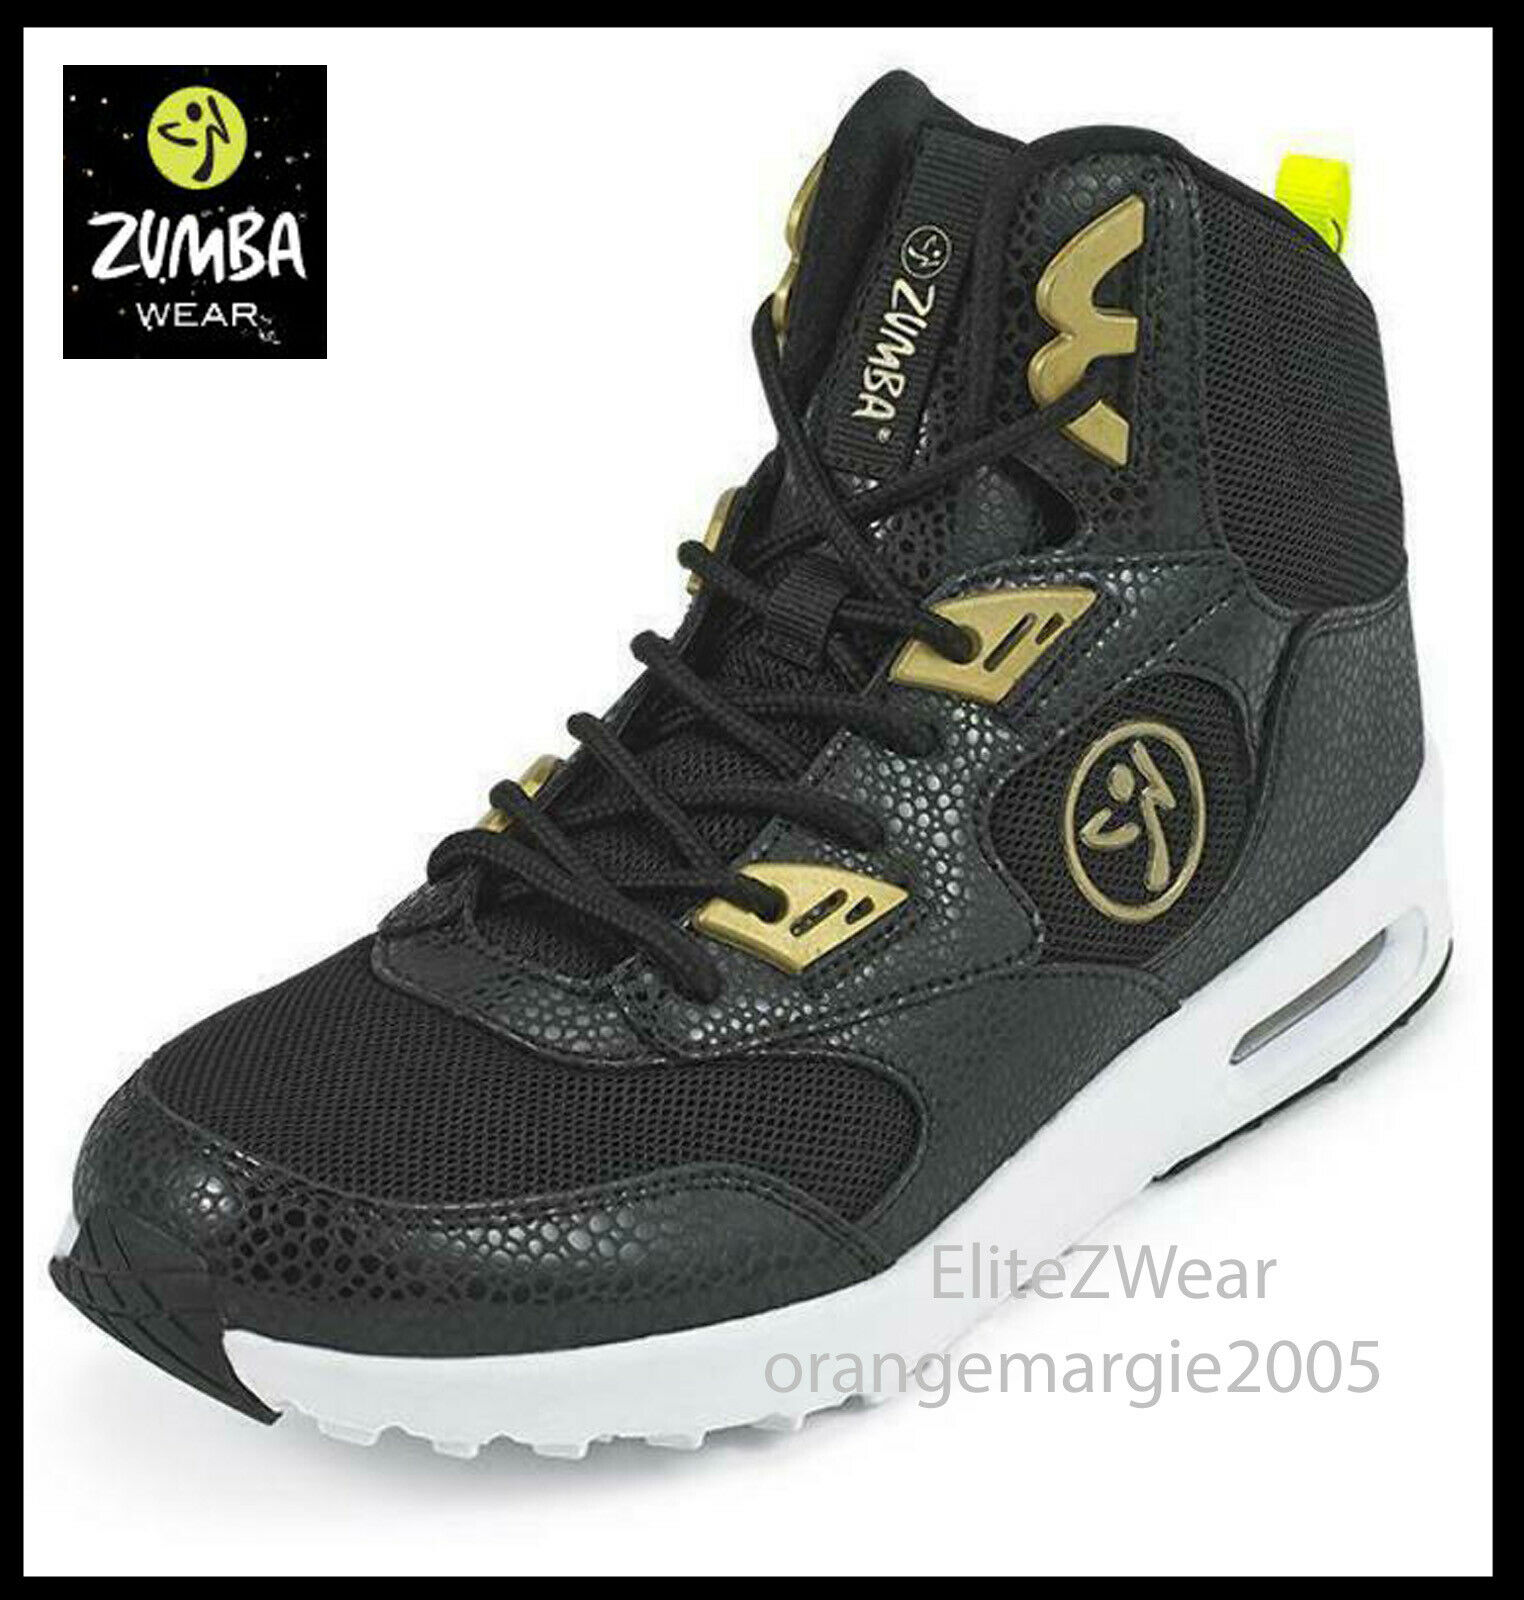 ZUMBA HIGH TOP schuhe TRAINERS Air Bounce Max -  EliteZWear fr Orlando Convention